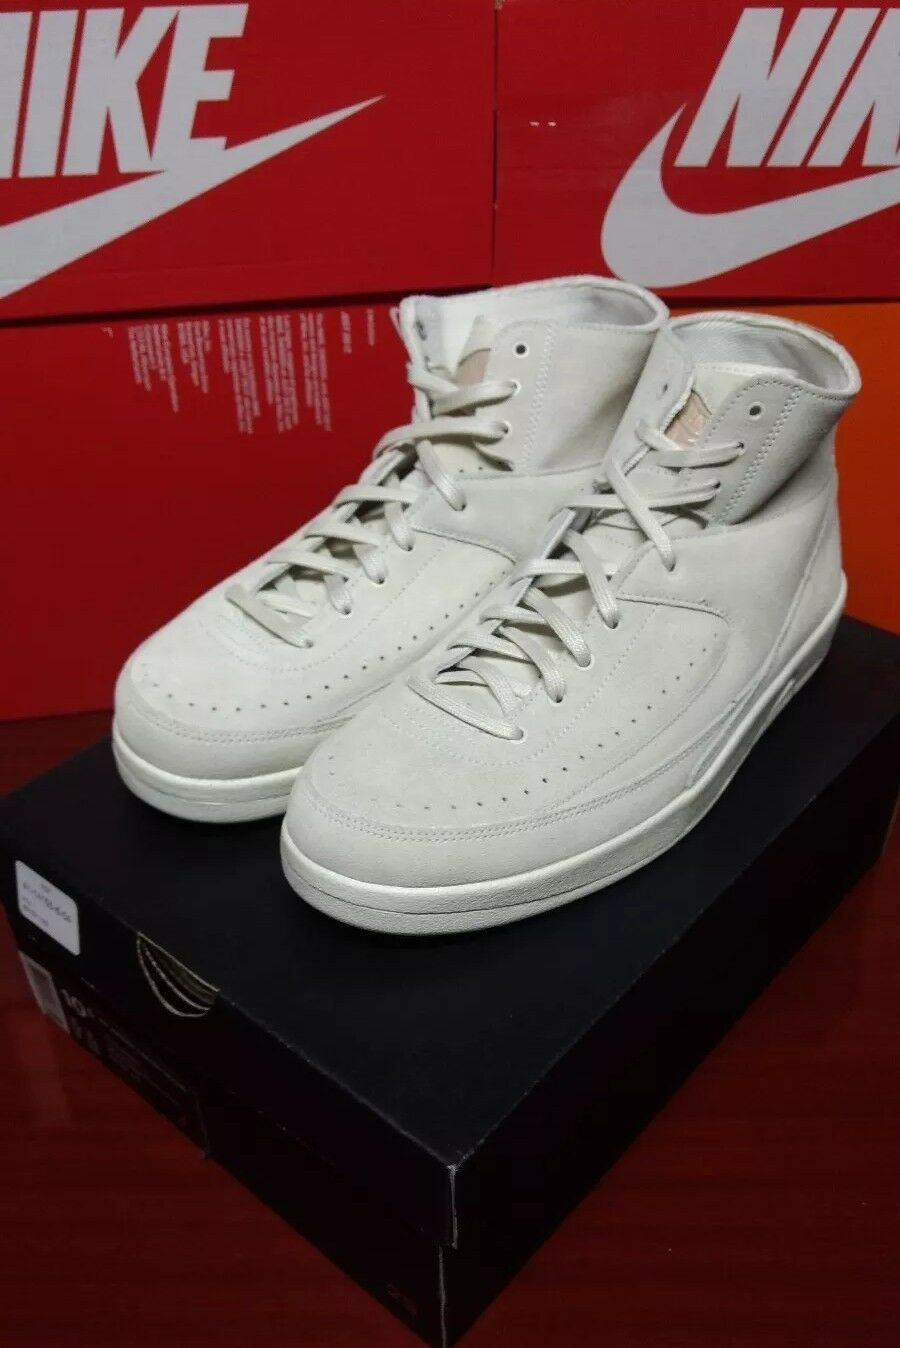 AIR JORDAN 2 RETRO DECON  Men's 10.5 897521-100 BASKETBALL SHOES Beige/Sail